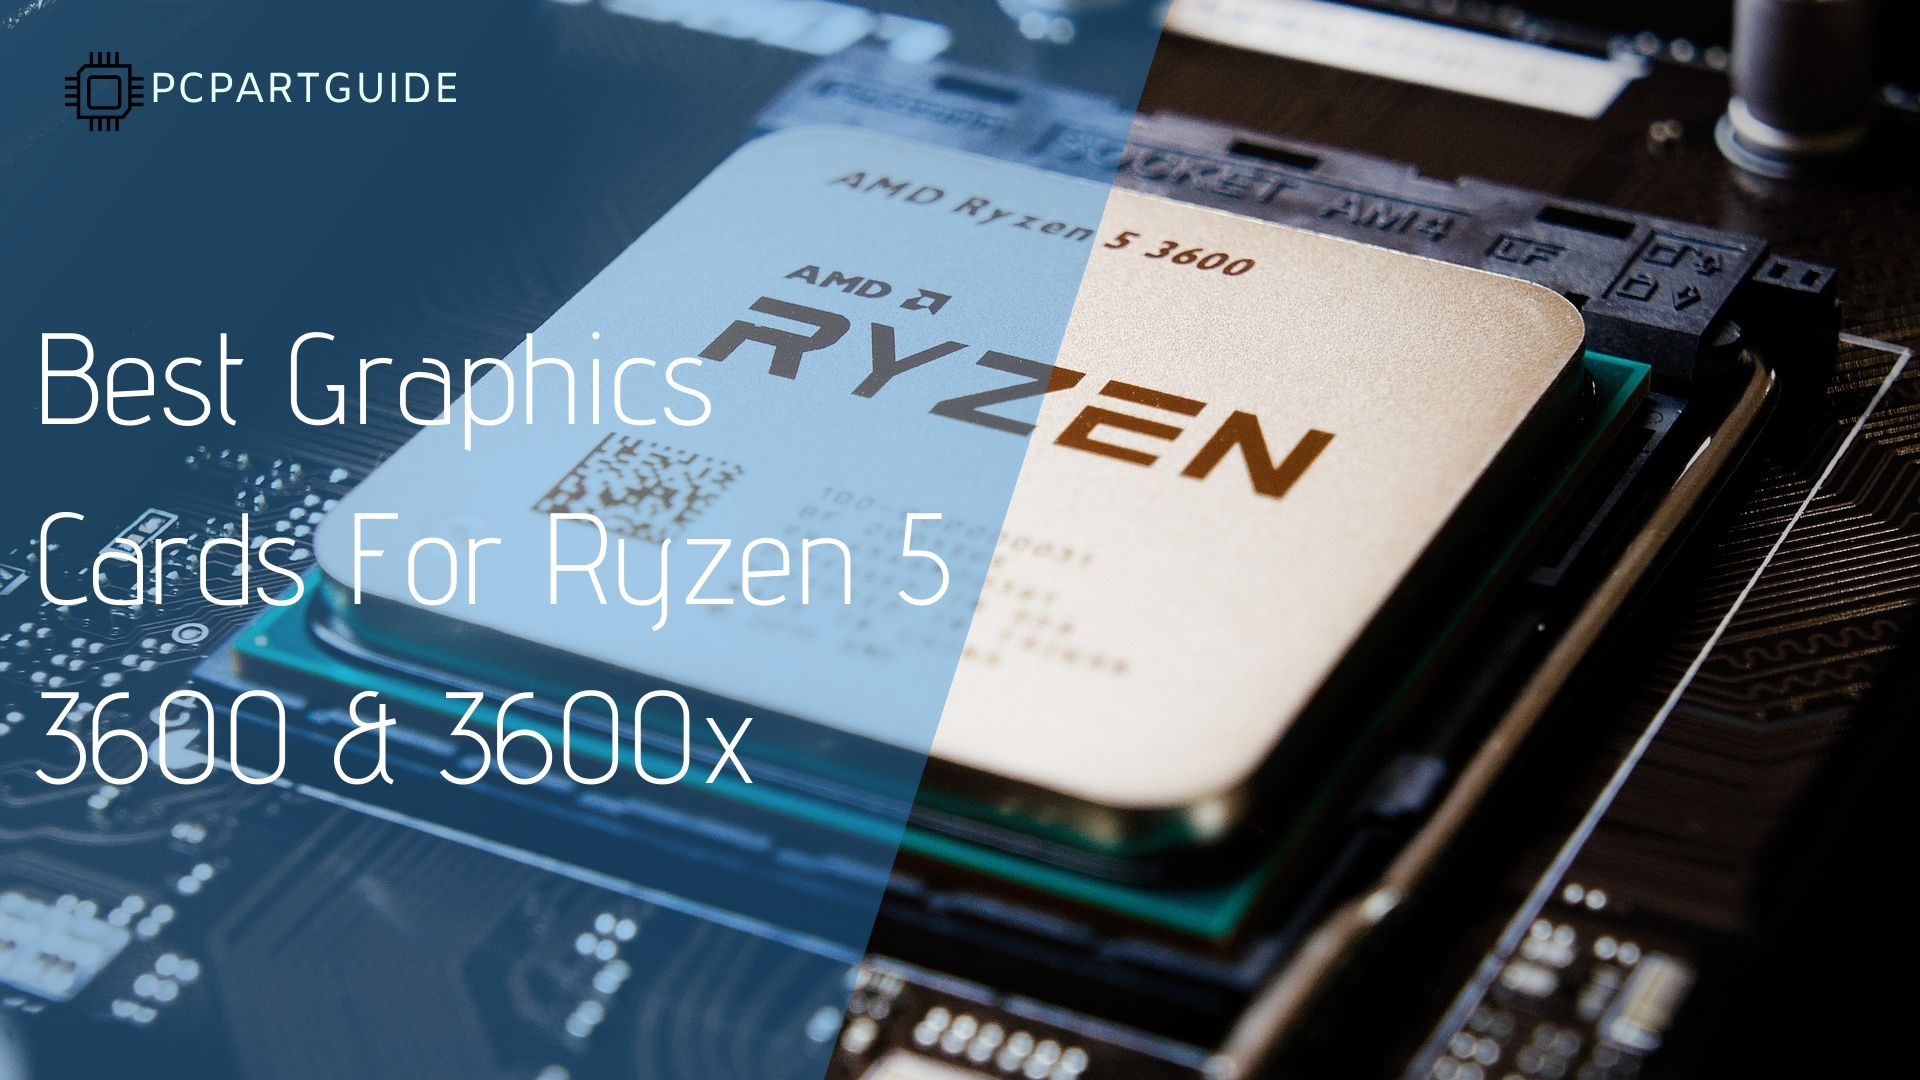 5 Best Graphics Cards For Ryzen 5 3600 & 3600x